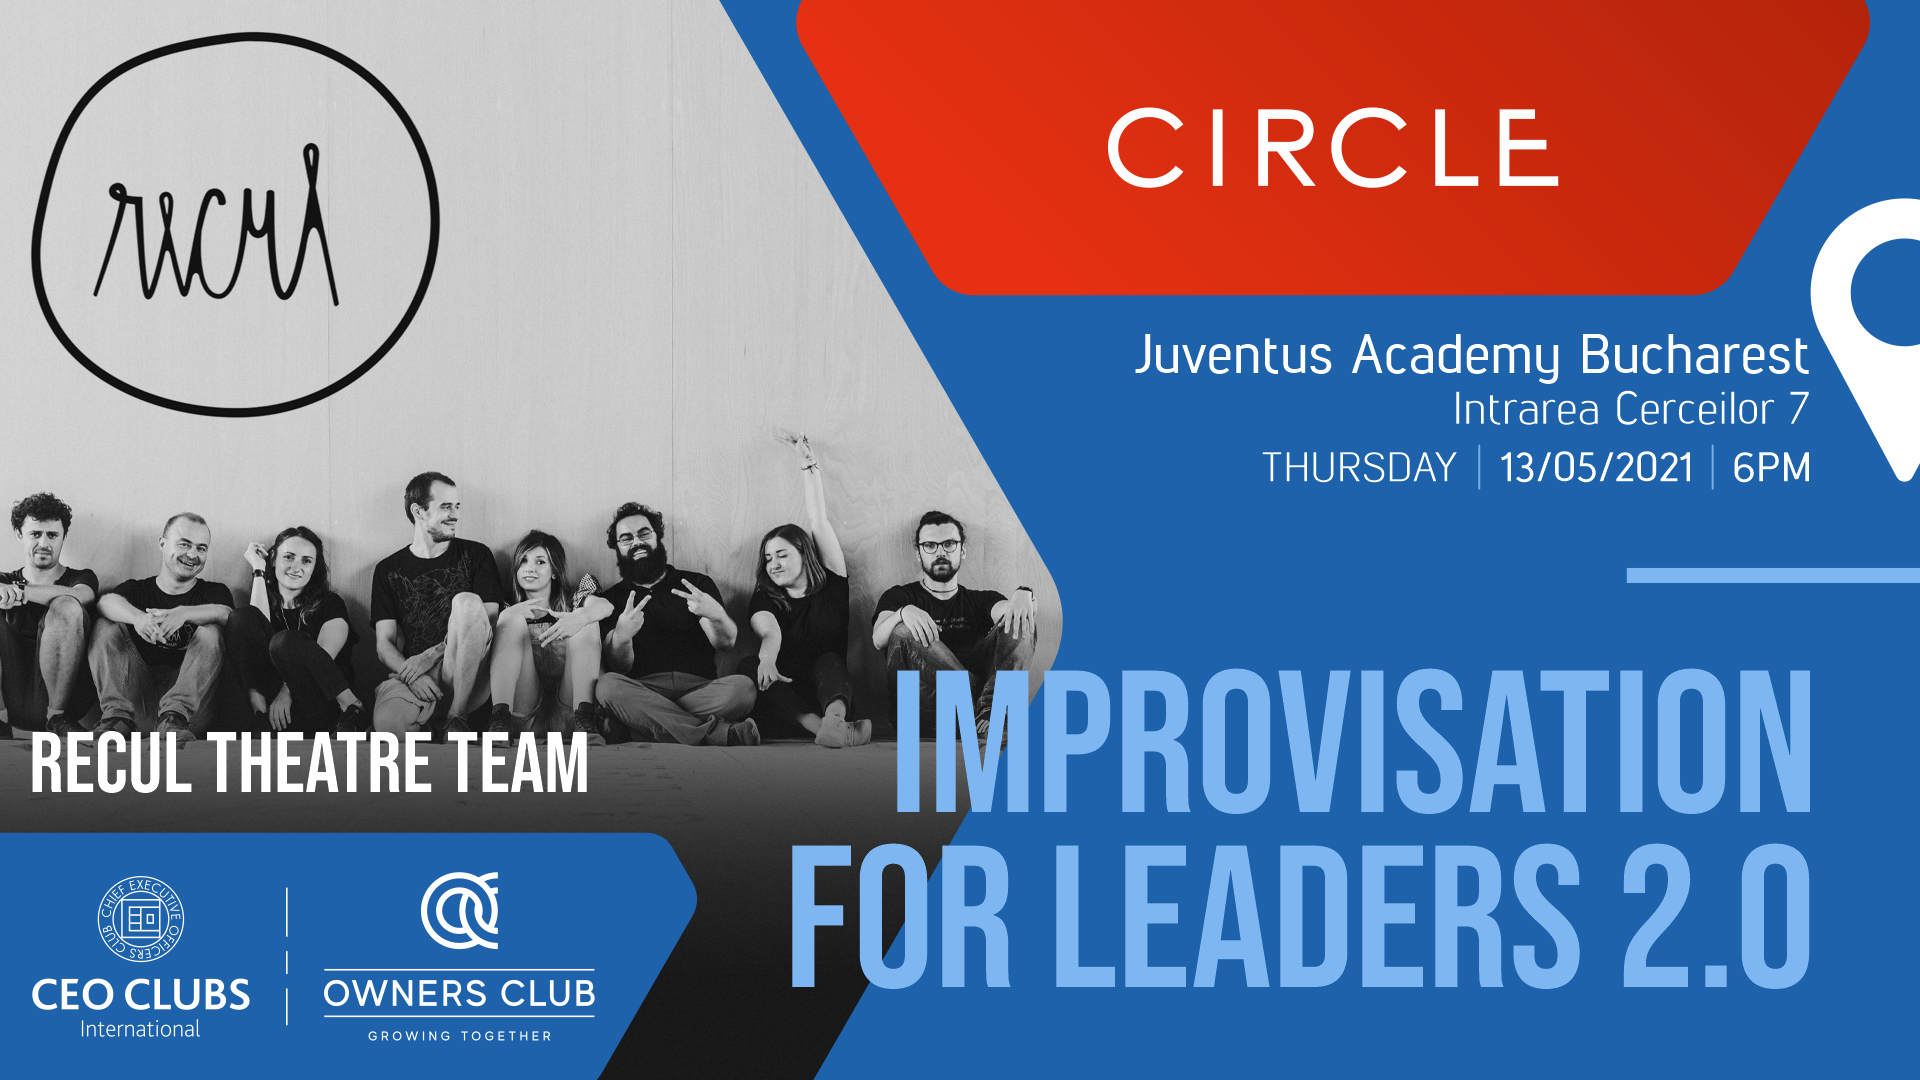 Live Circle - Improvisation for leaders 2.0